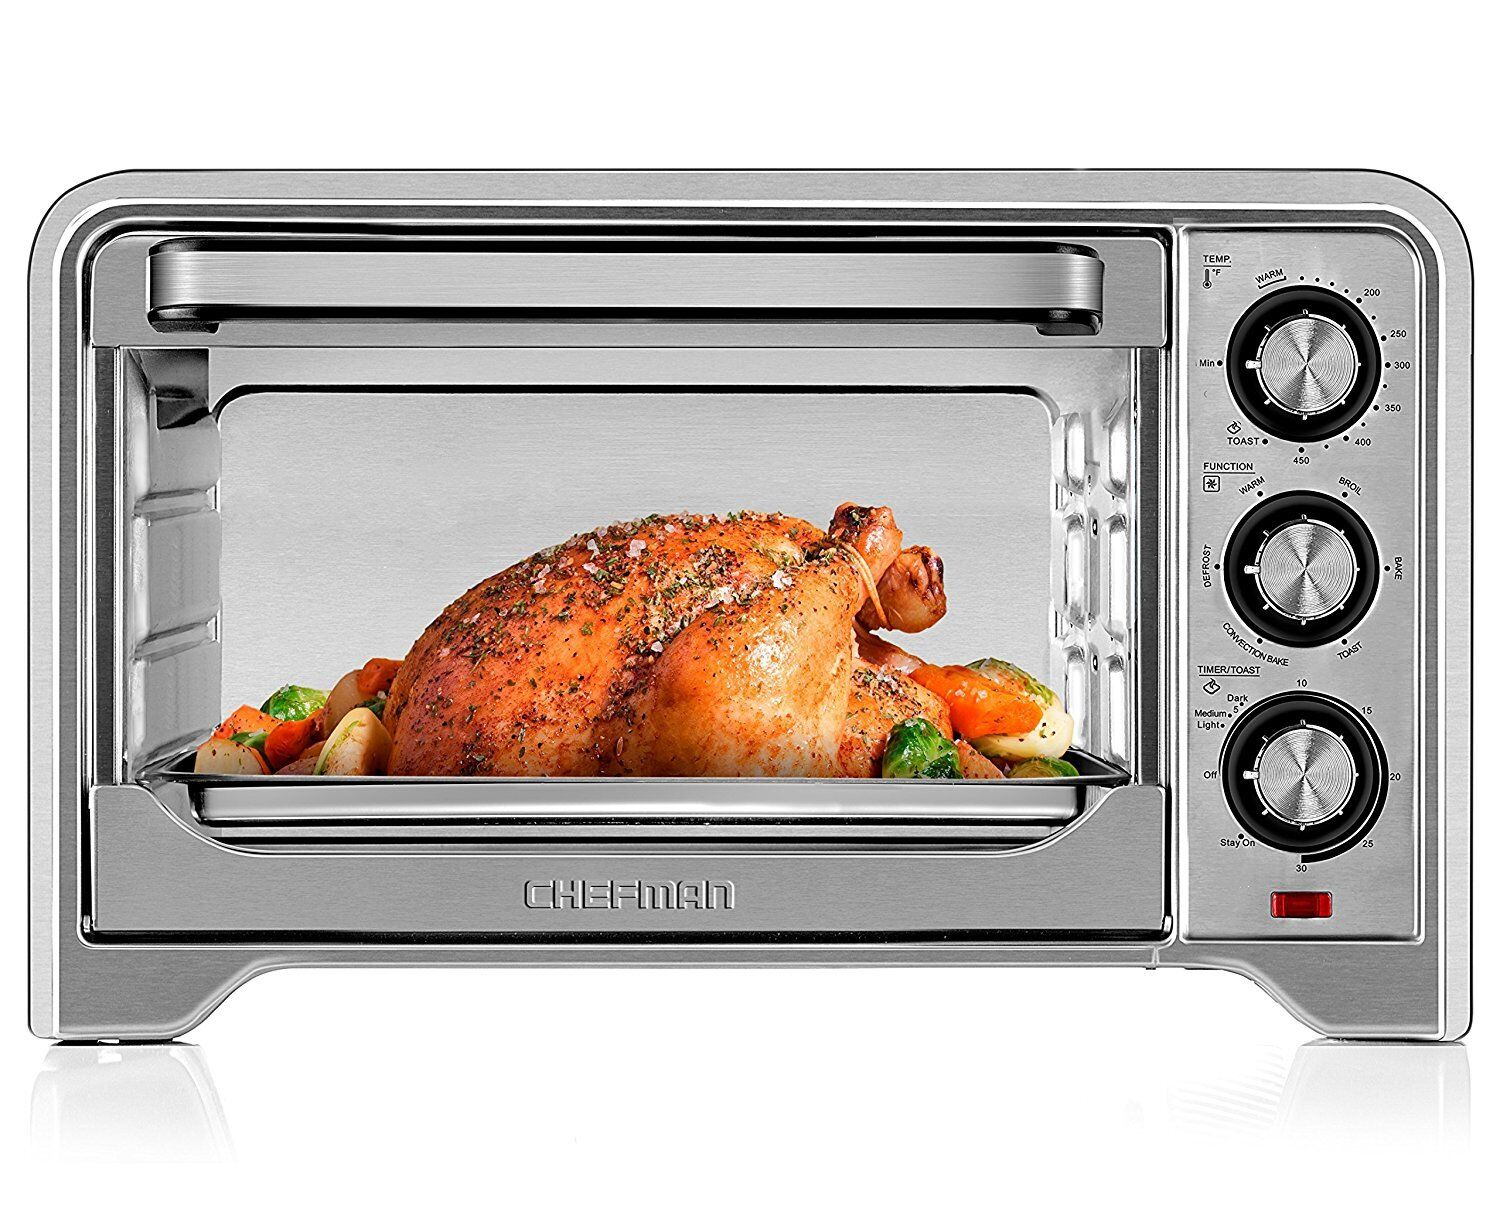 Toaster Convection Oven Countertop X-Large 6 Function Stainless Steel Chefman